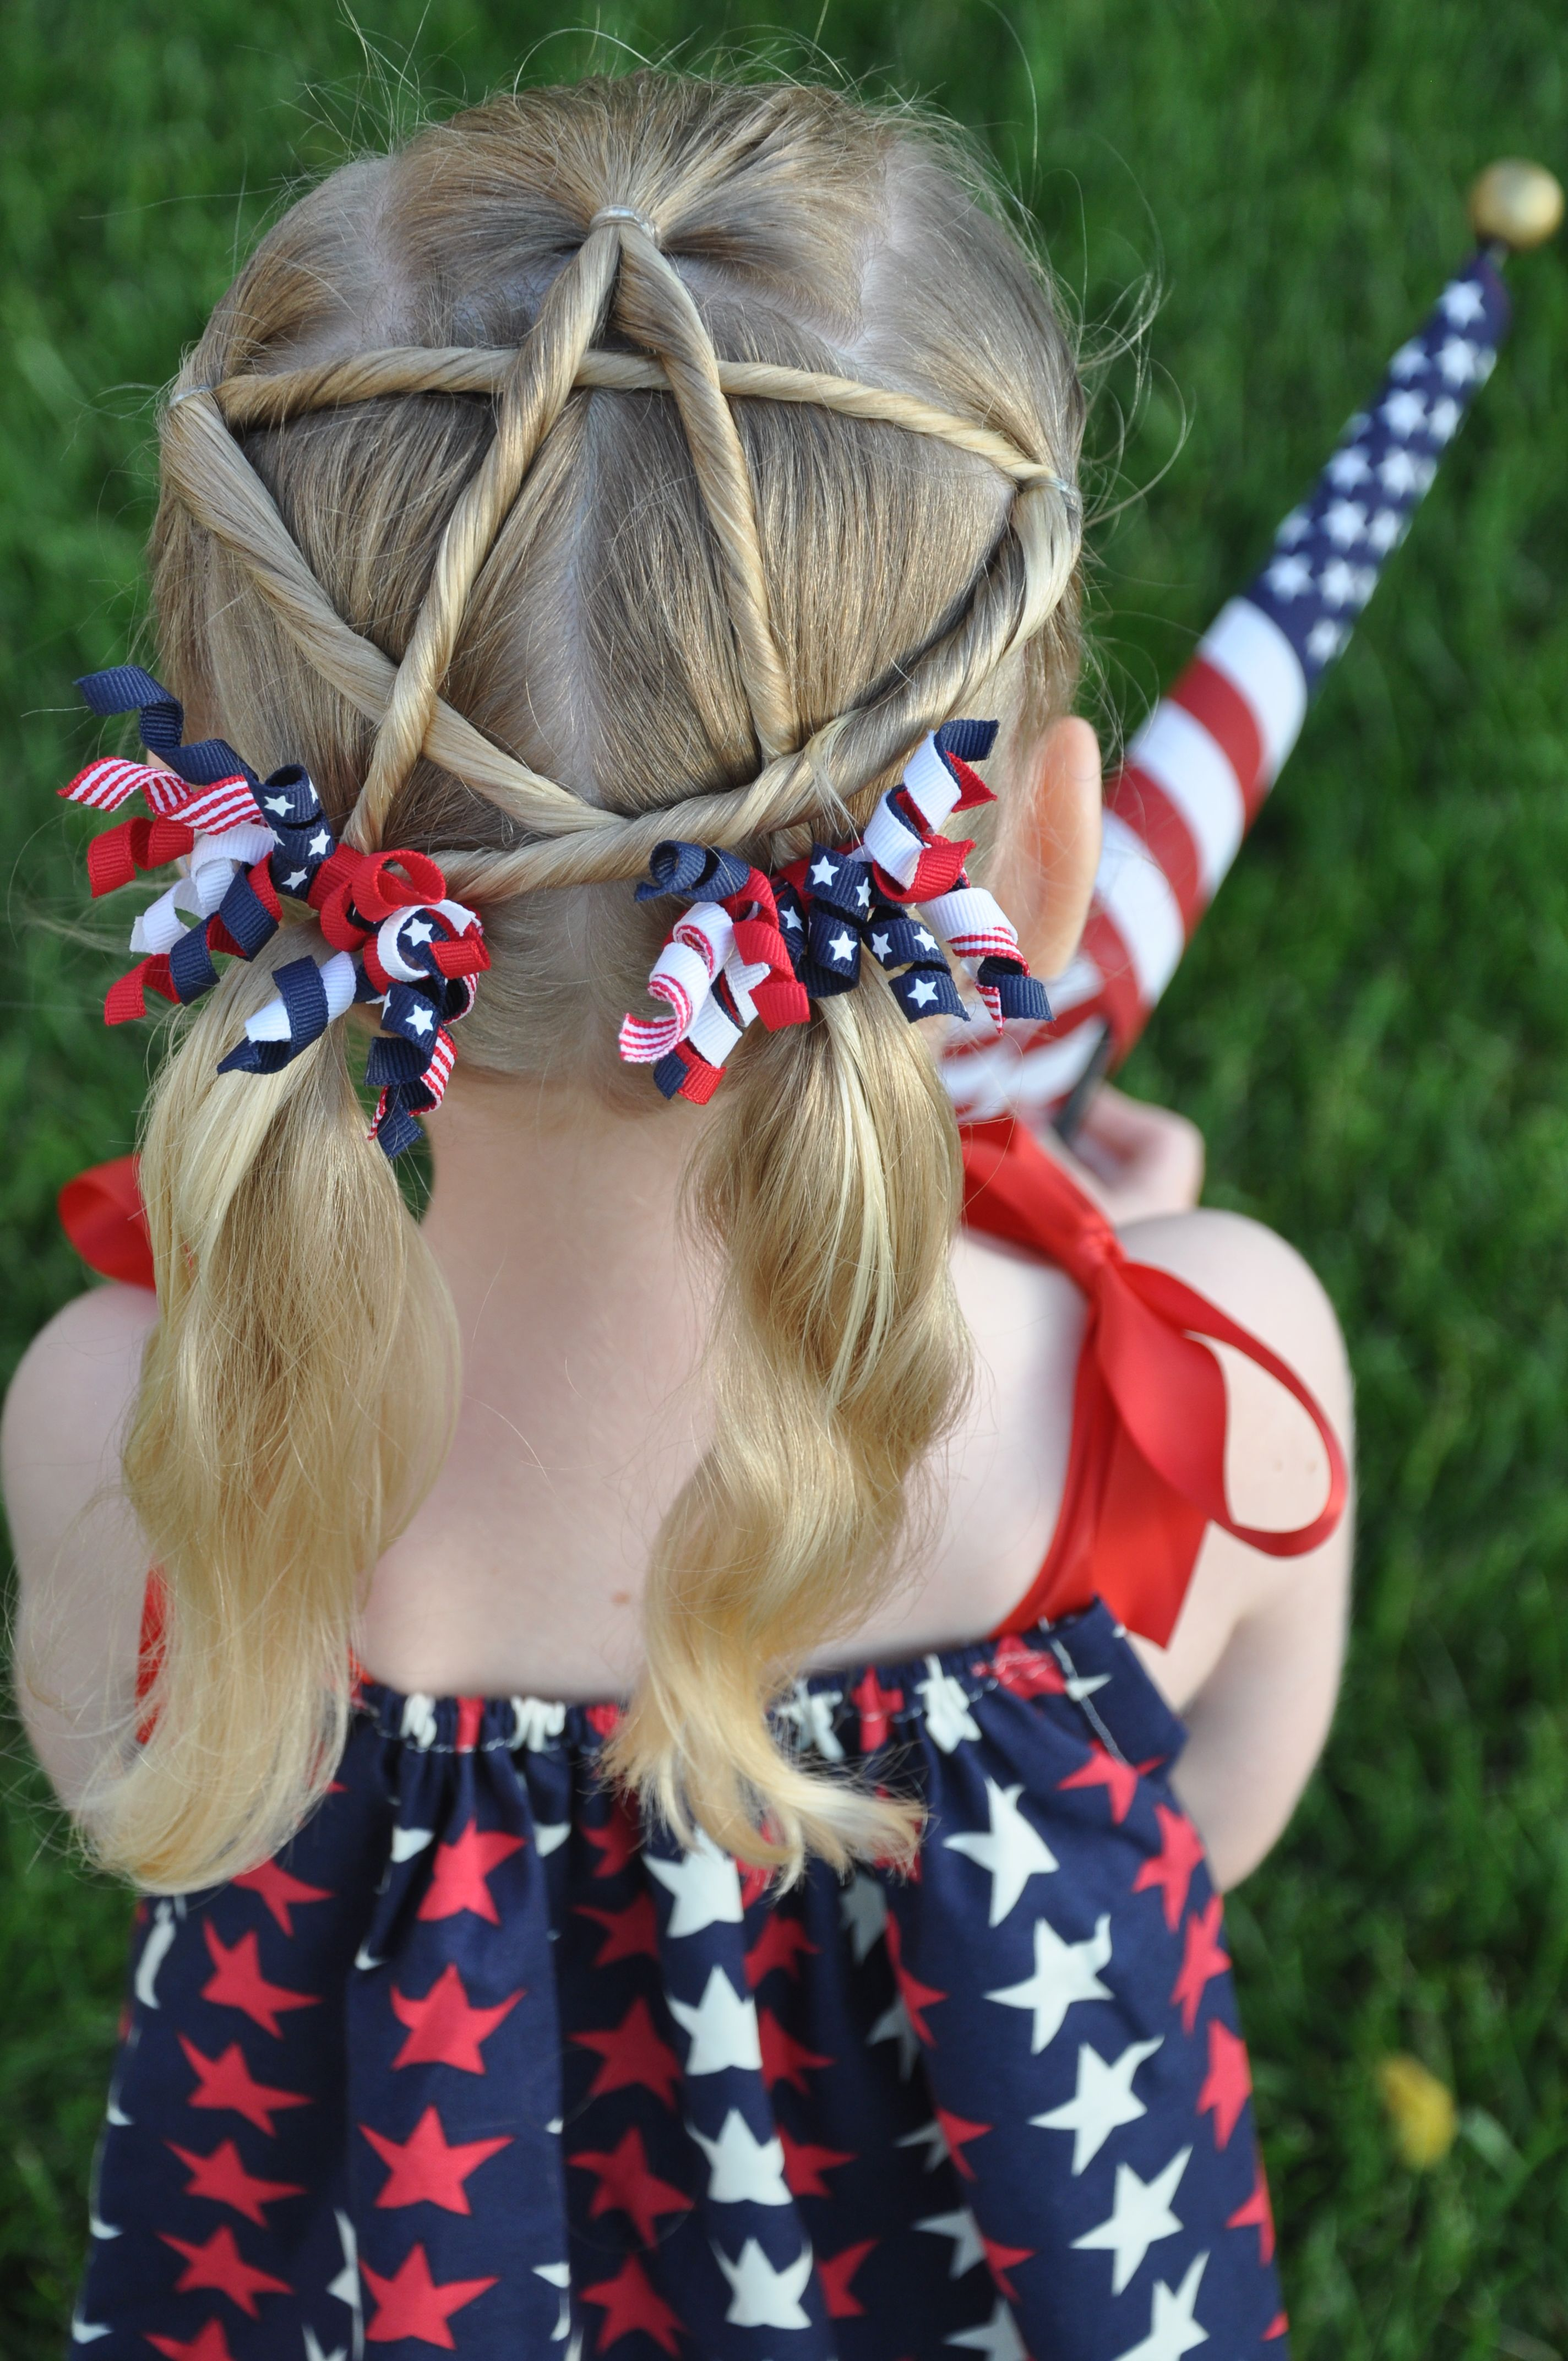 37 creative hairstyle ideas for little girls | 4th of july